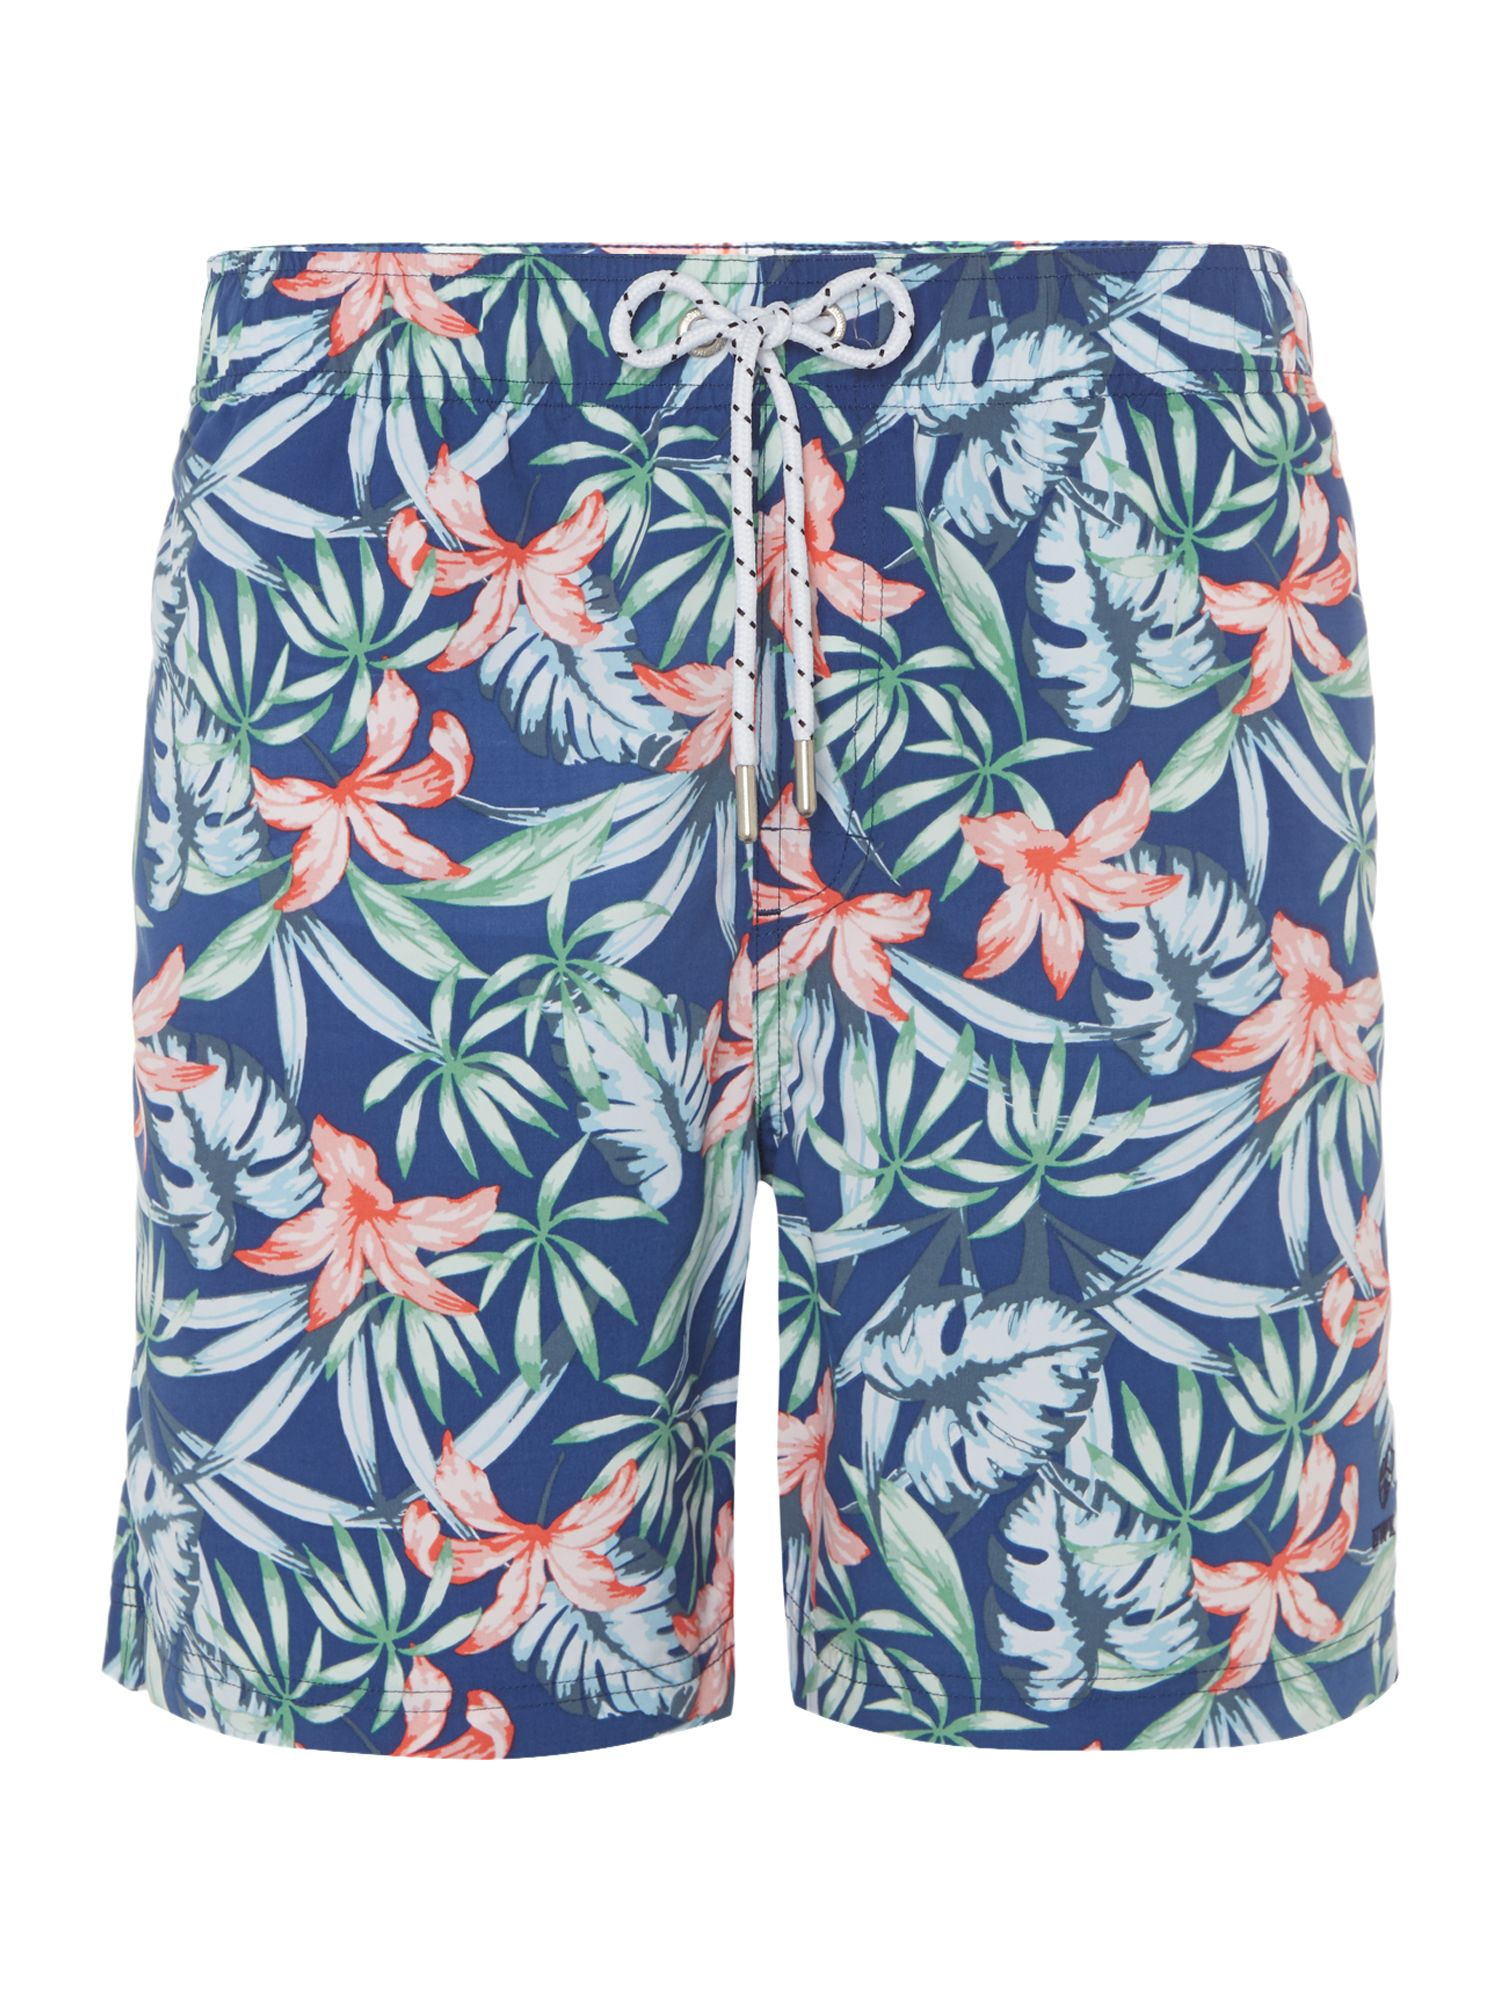 Men's Howick Jungle Leaf Print Swim Short, Blue